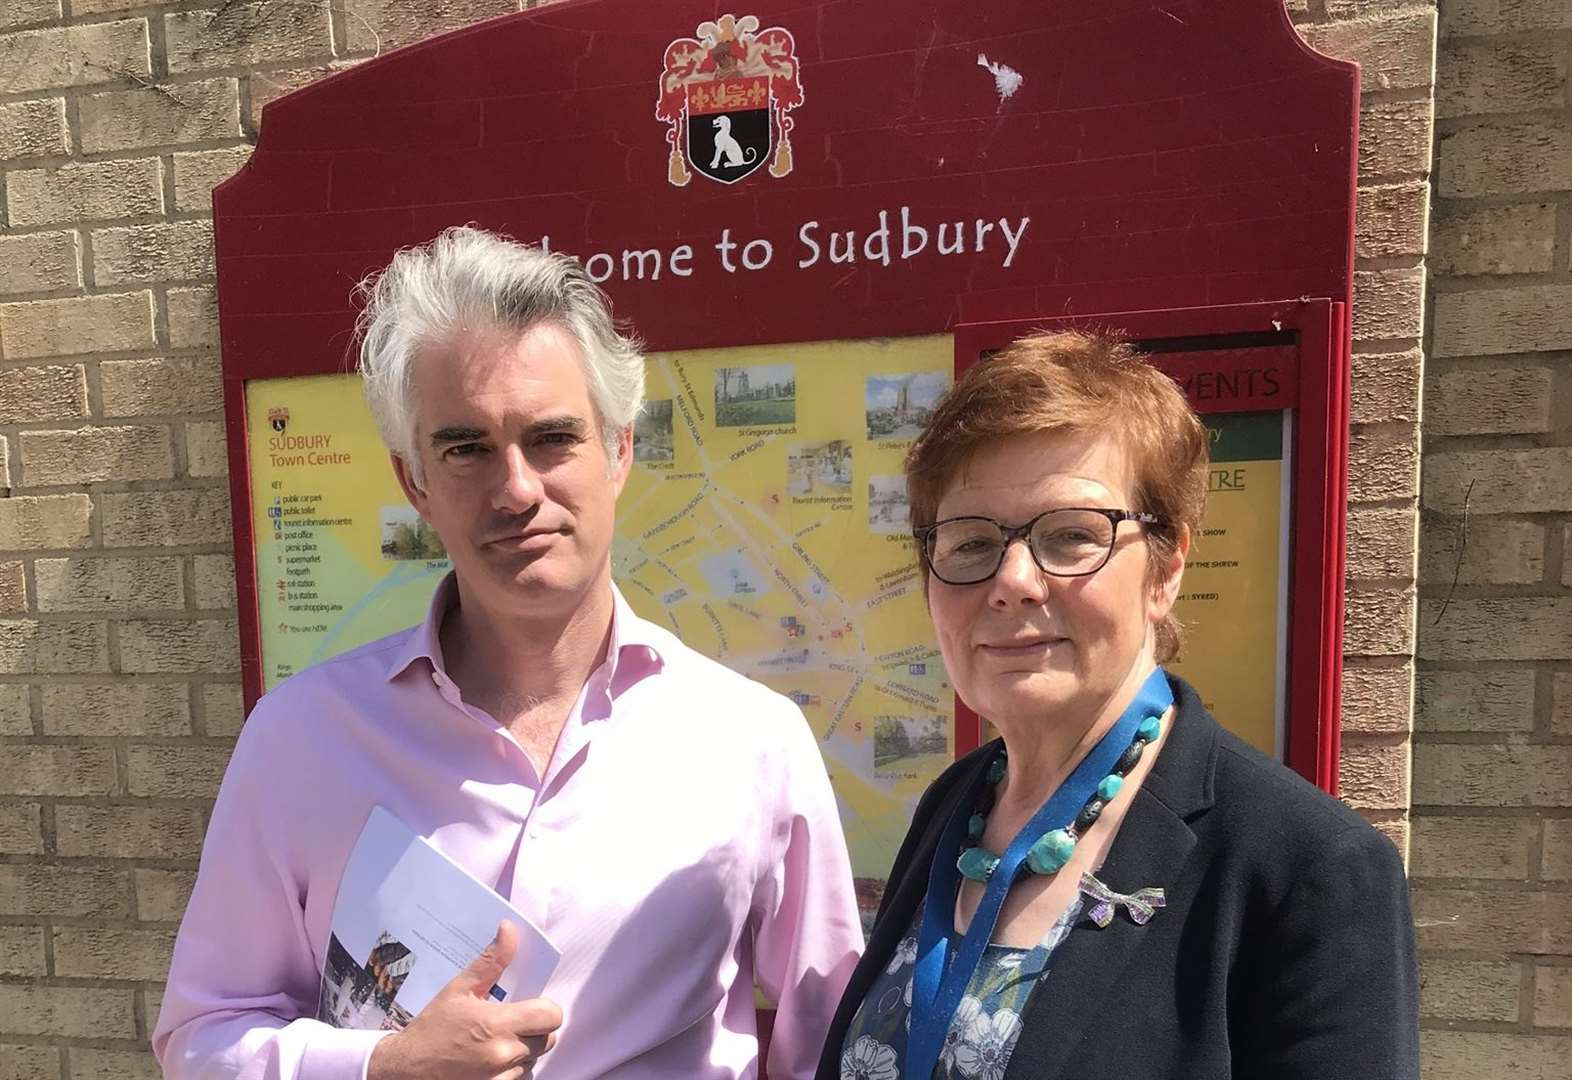 MP wants solutions to keep rural bus services going after county council's subsidy cuts